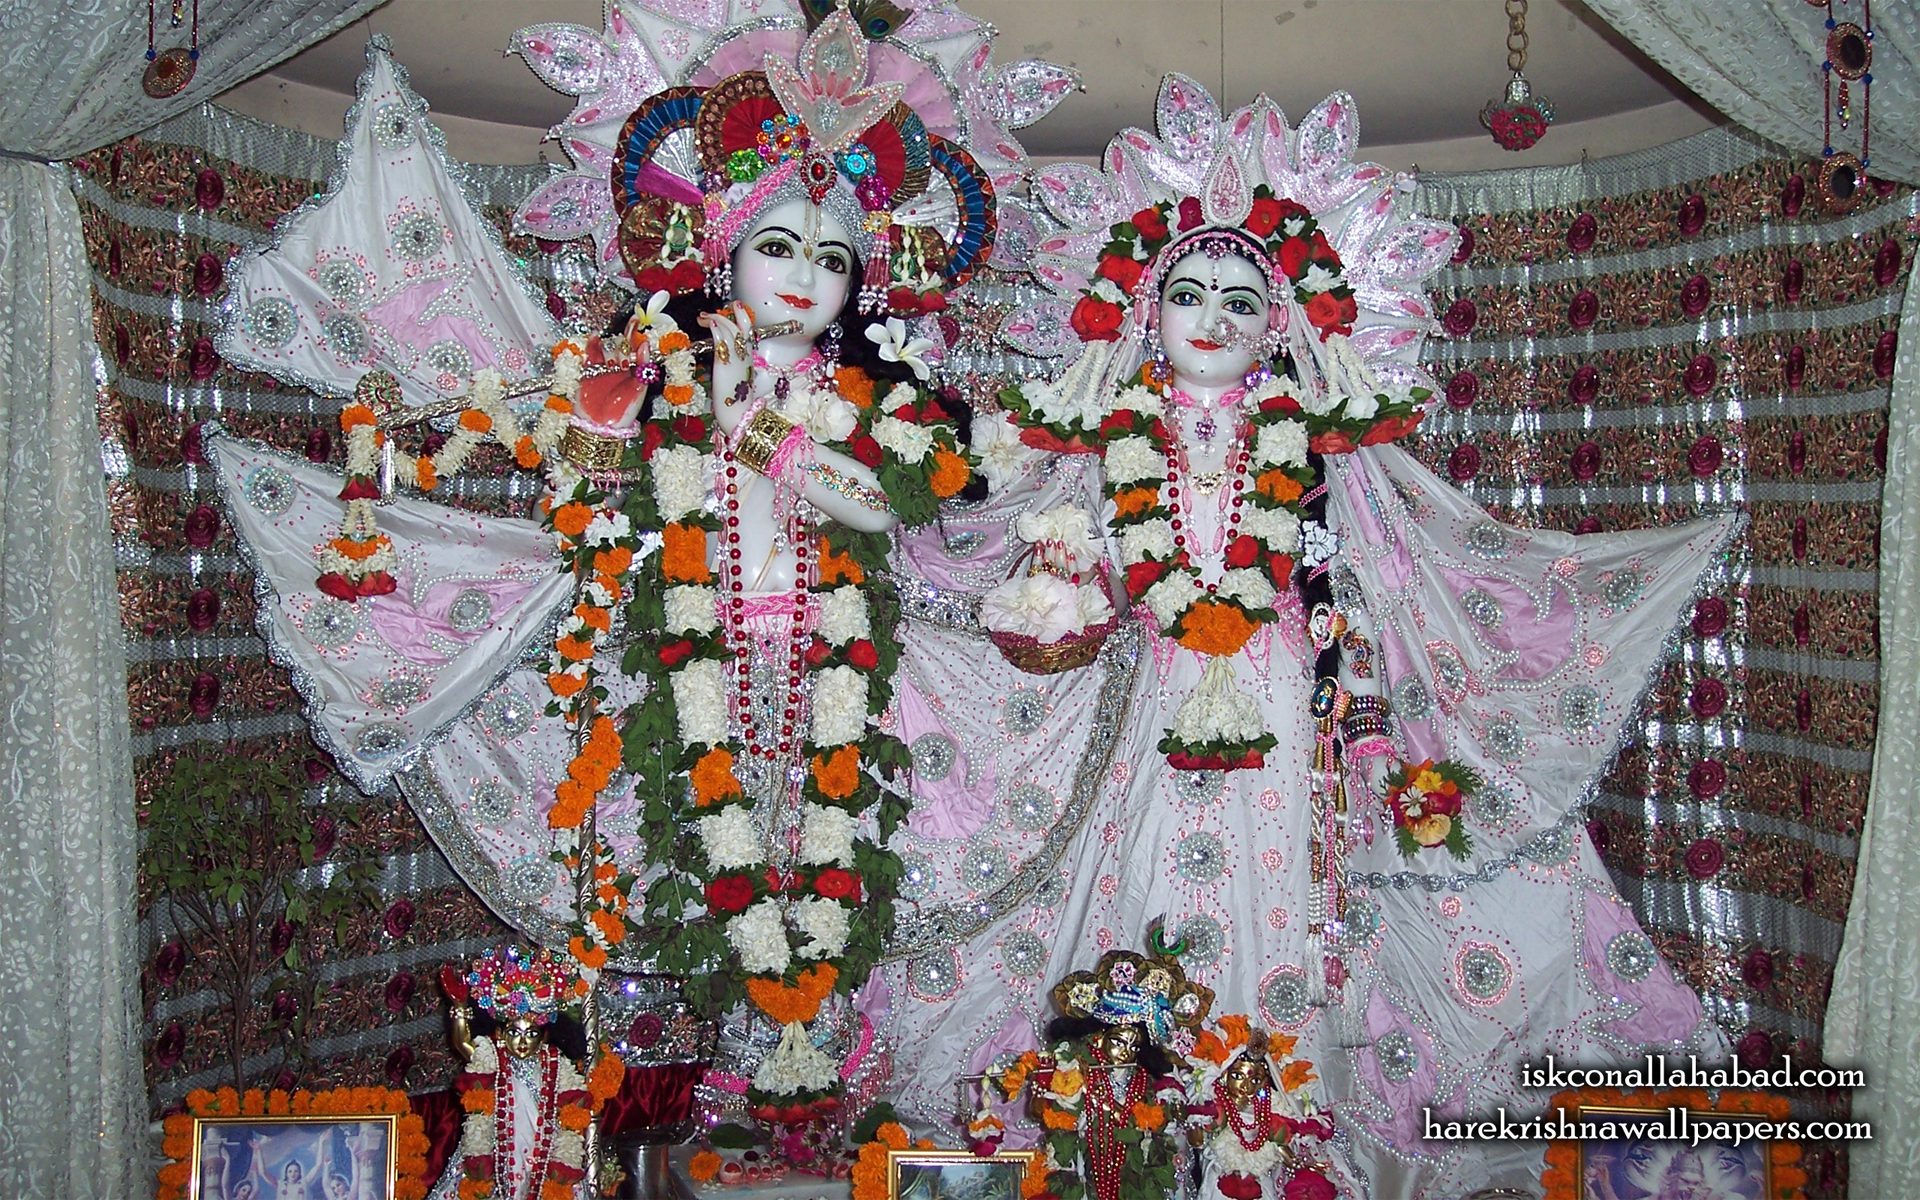 Sri Sri Radha Venimadhava Wallpaper (002) Size 1920x1200 Download